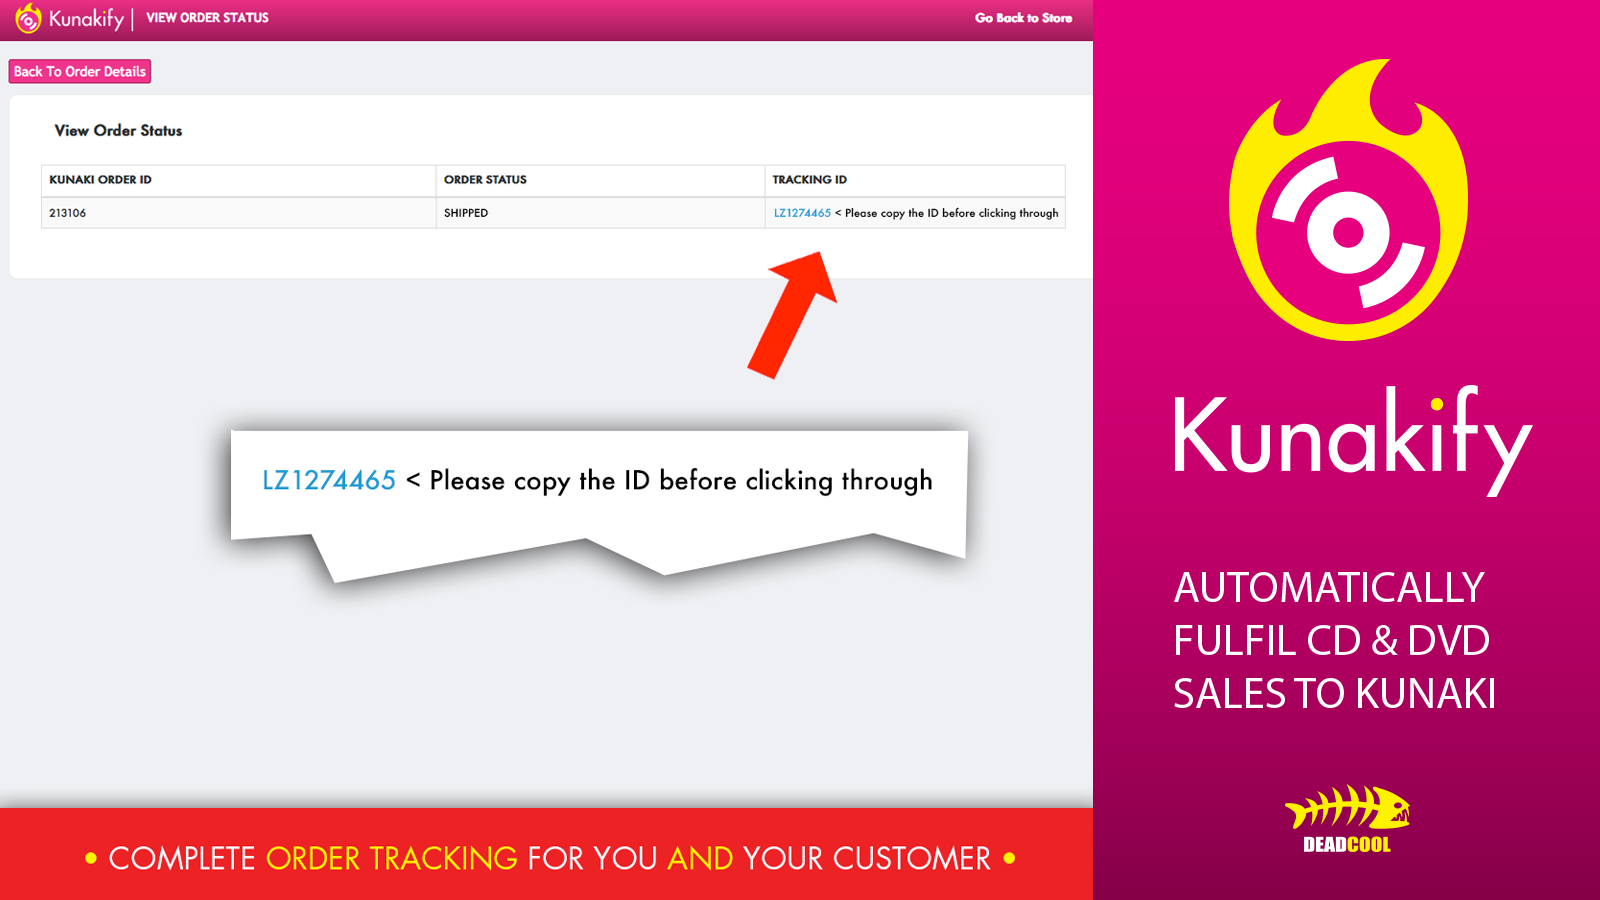 Complete order tracking for you and your customer